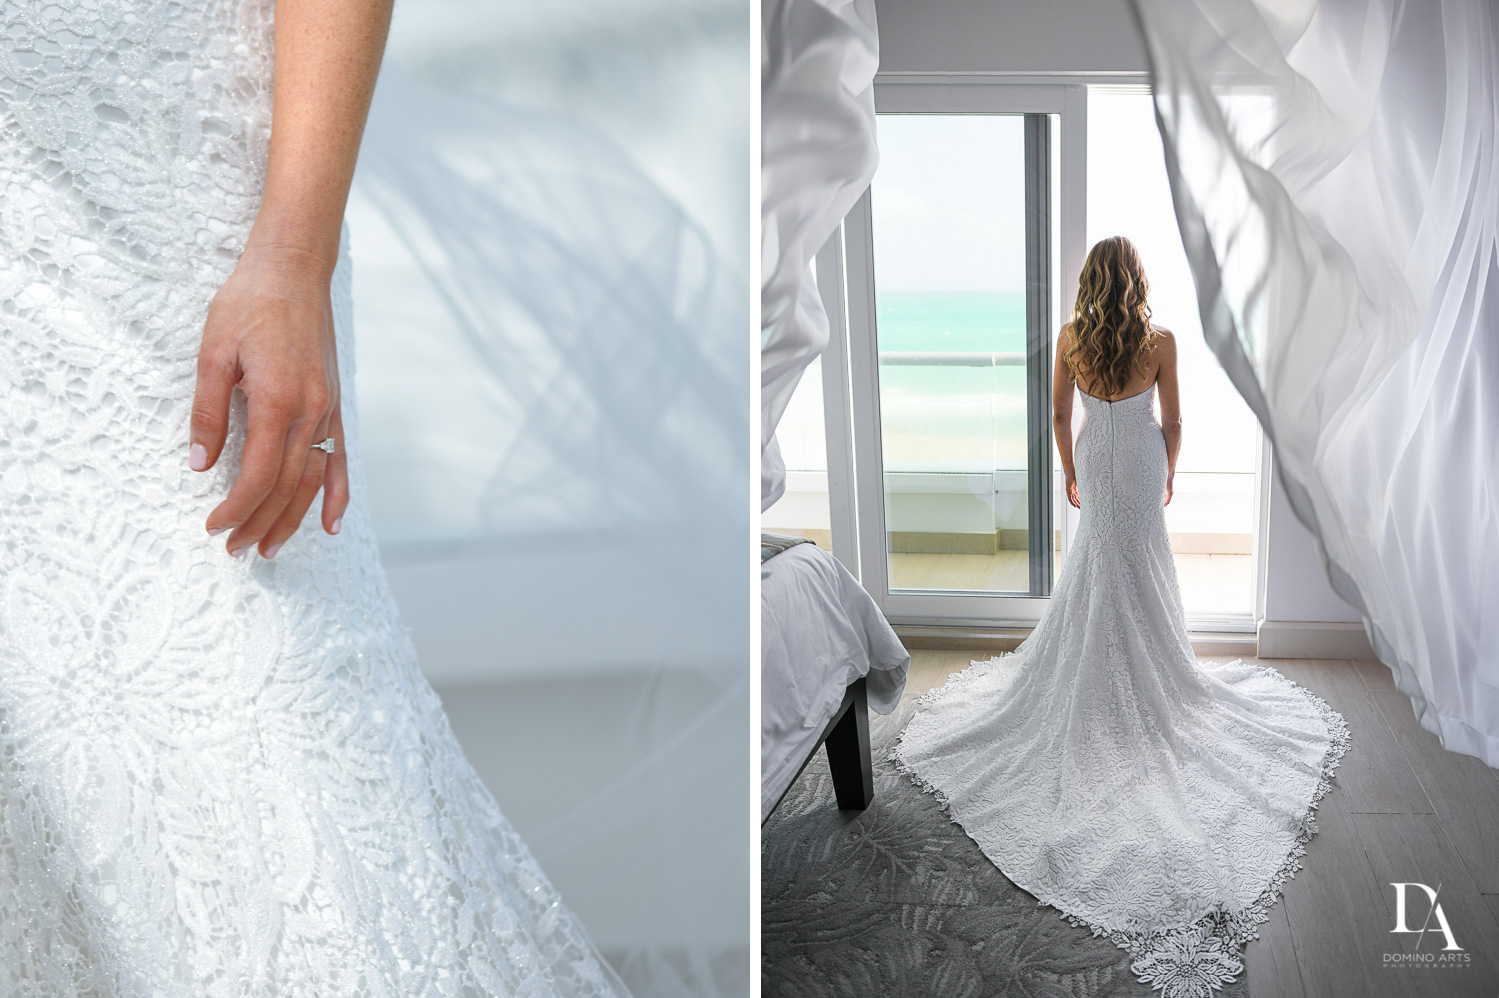 wedding dress at Tropical Luxury Jewish Wedding in Miami Beach by Domino Arts Photography